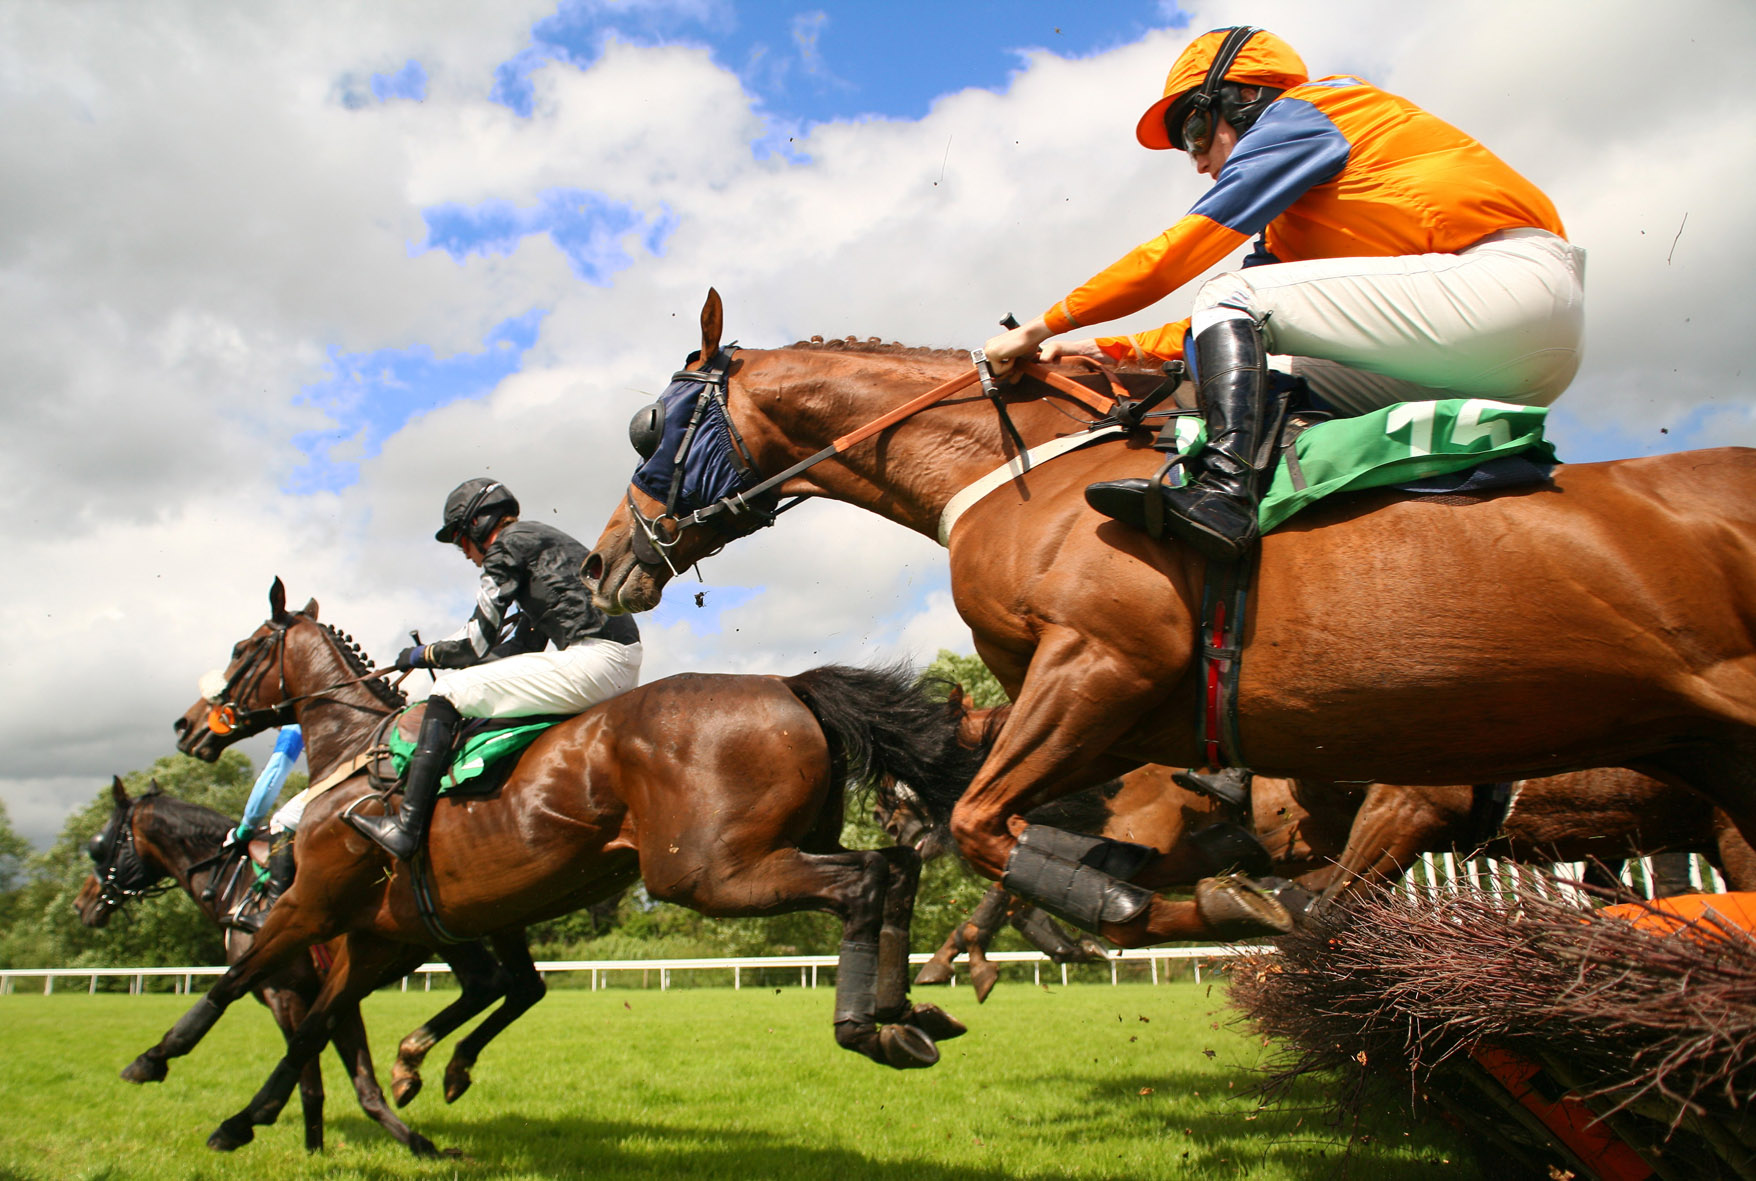 Private hire drivers plan city blockade during Grand National